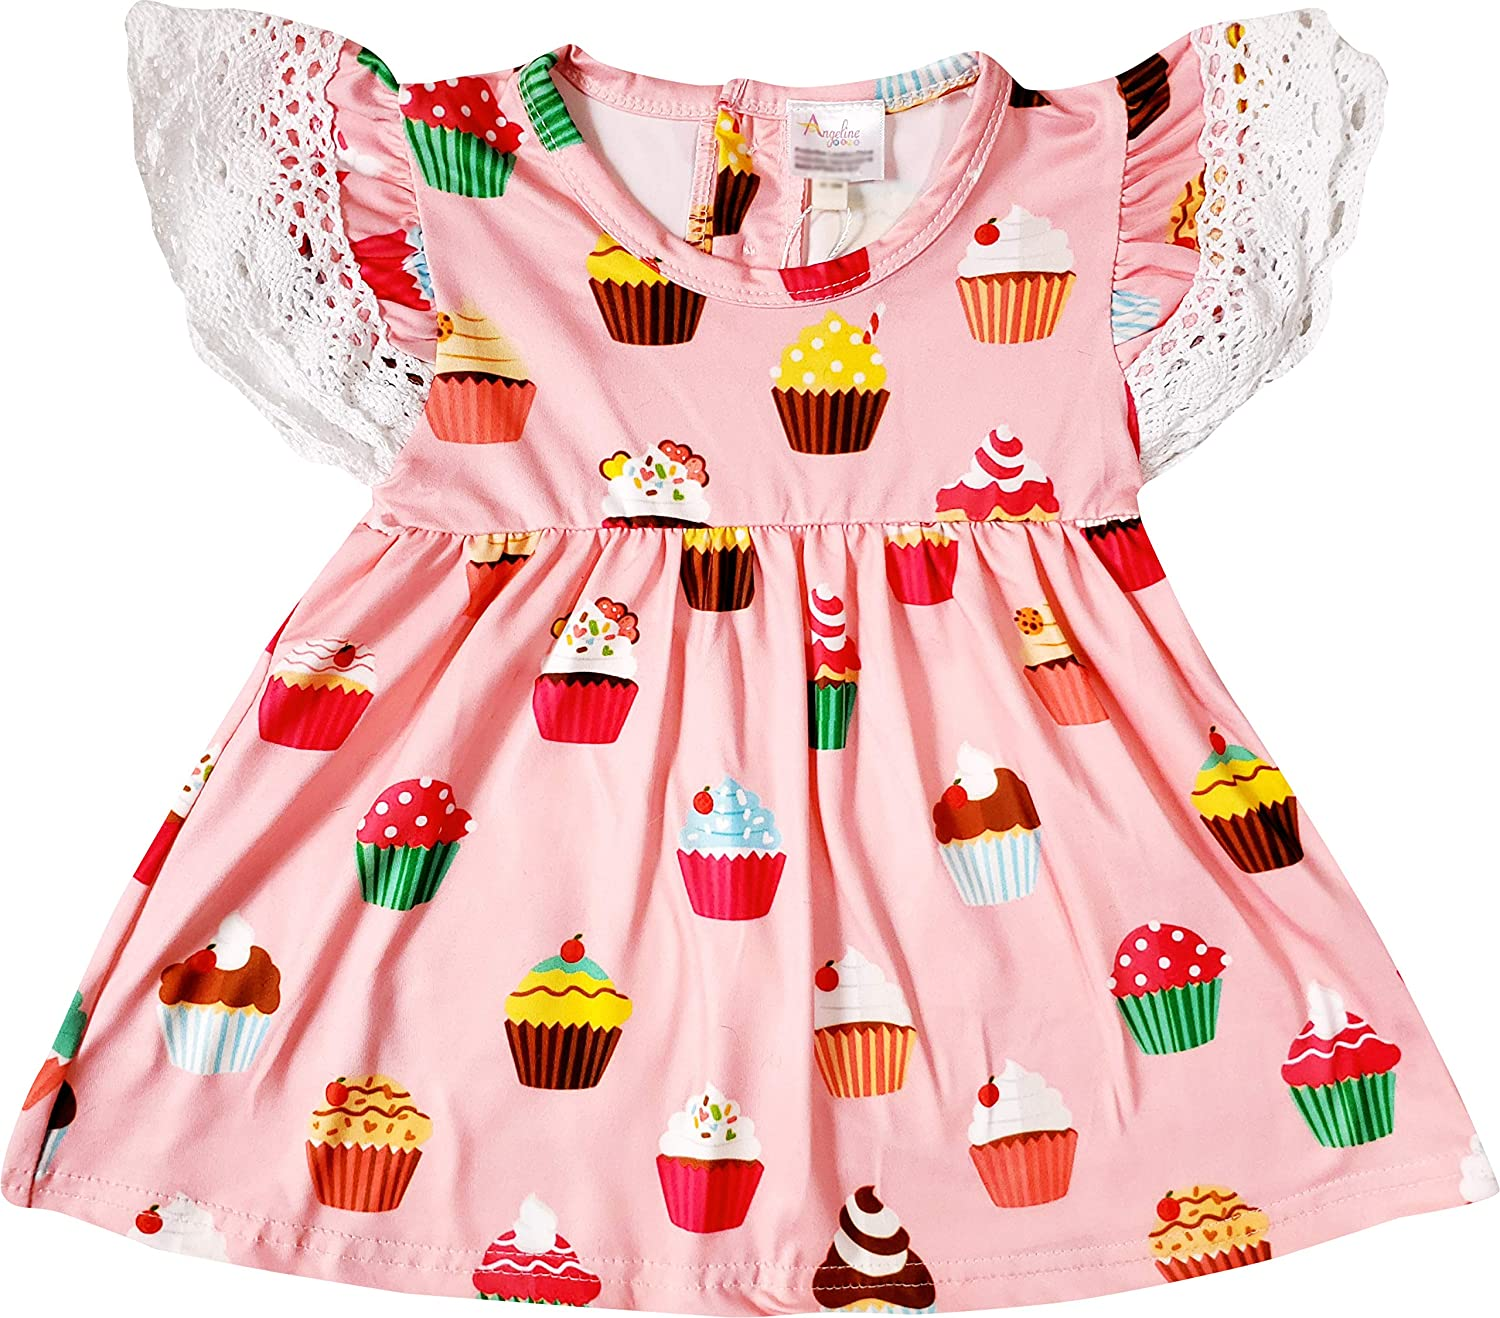 Boutique Clothing Baby Little Girls Spring Summer Top Short Outfit Sets Unique Novelty Styles